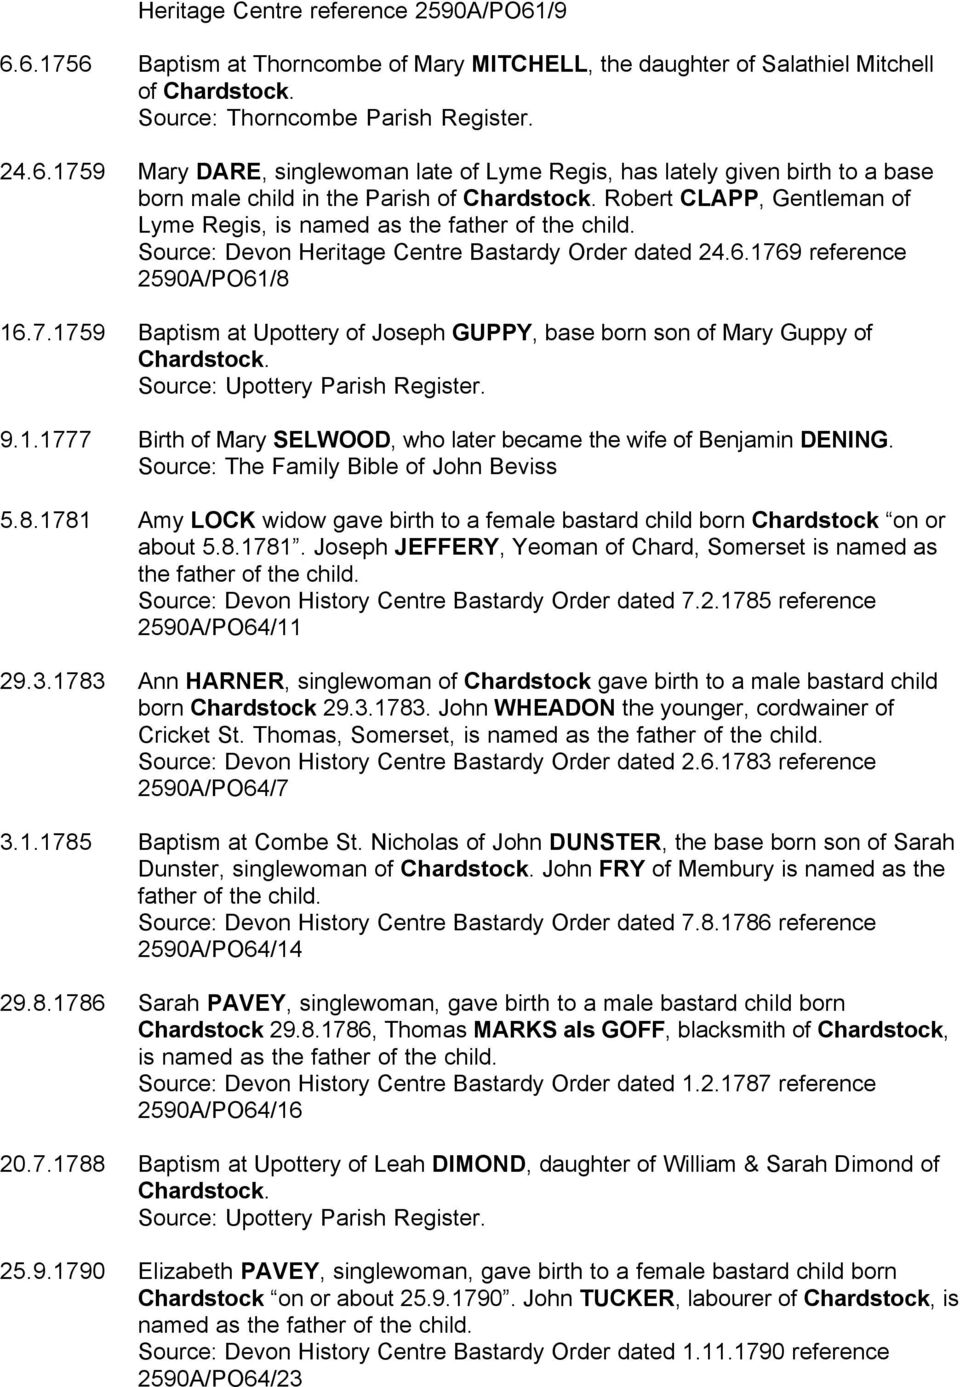 9 reference 2590A/PO61/8 16.7.1759 Baptism at Upottery of Joseph GUPPY, base born son of Mary Guppy of Chardstock. 9.1.1777 Birth of Mary SELWOOD, who later became the wife of Benjamin DENING. 5.8.1781 Amy LOCK widow gave birth to a female bastard child born Chardstock on or about 5.